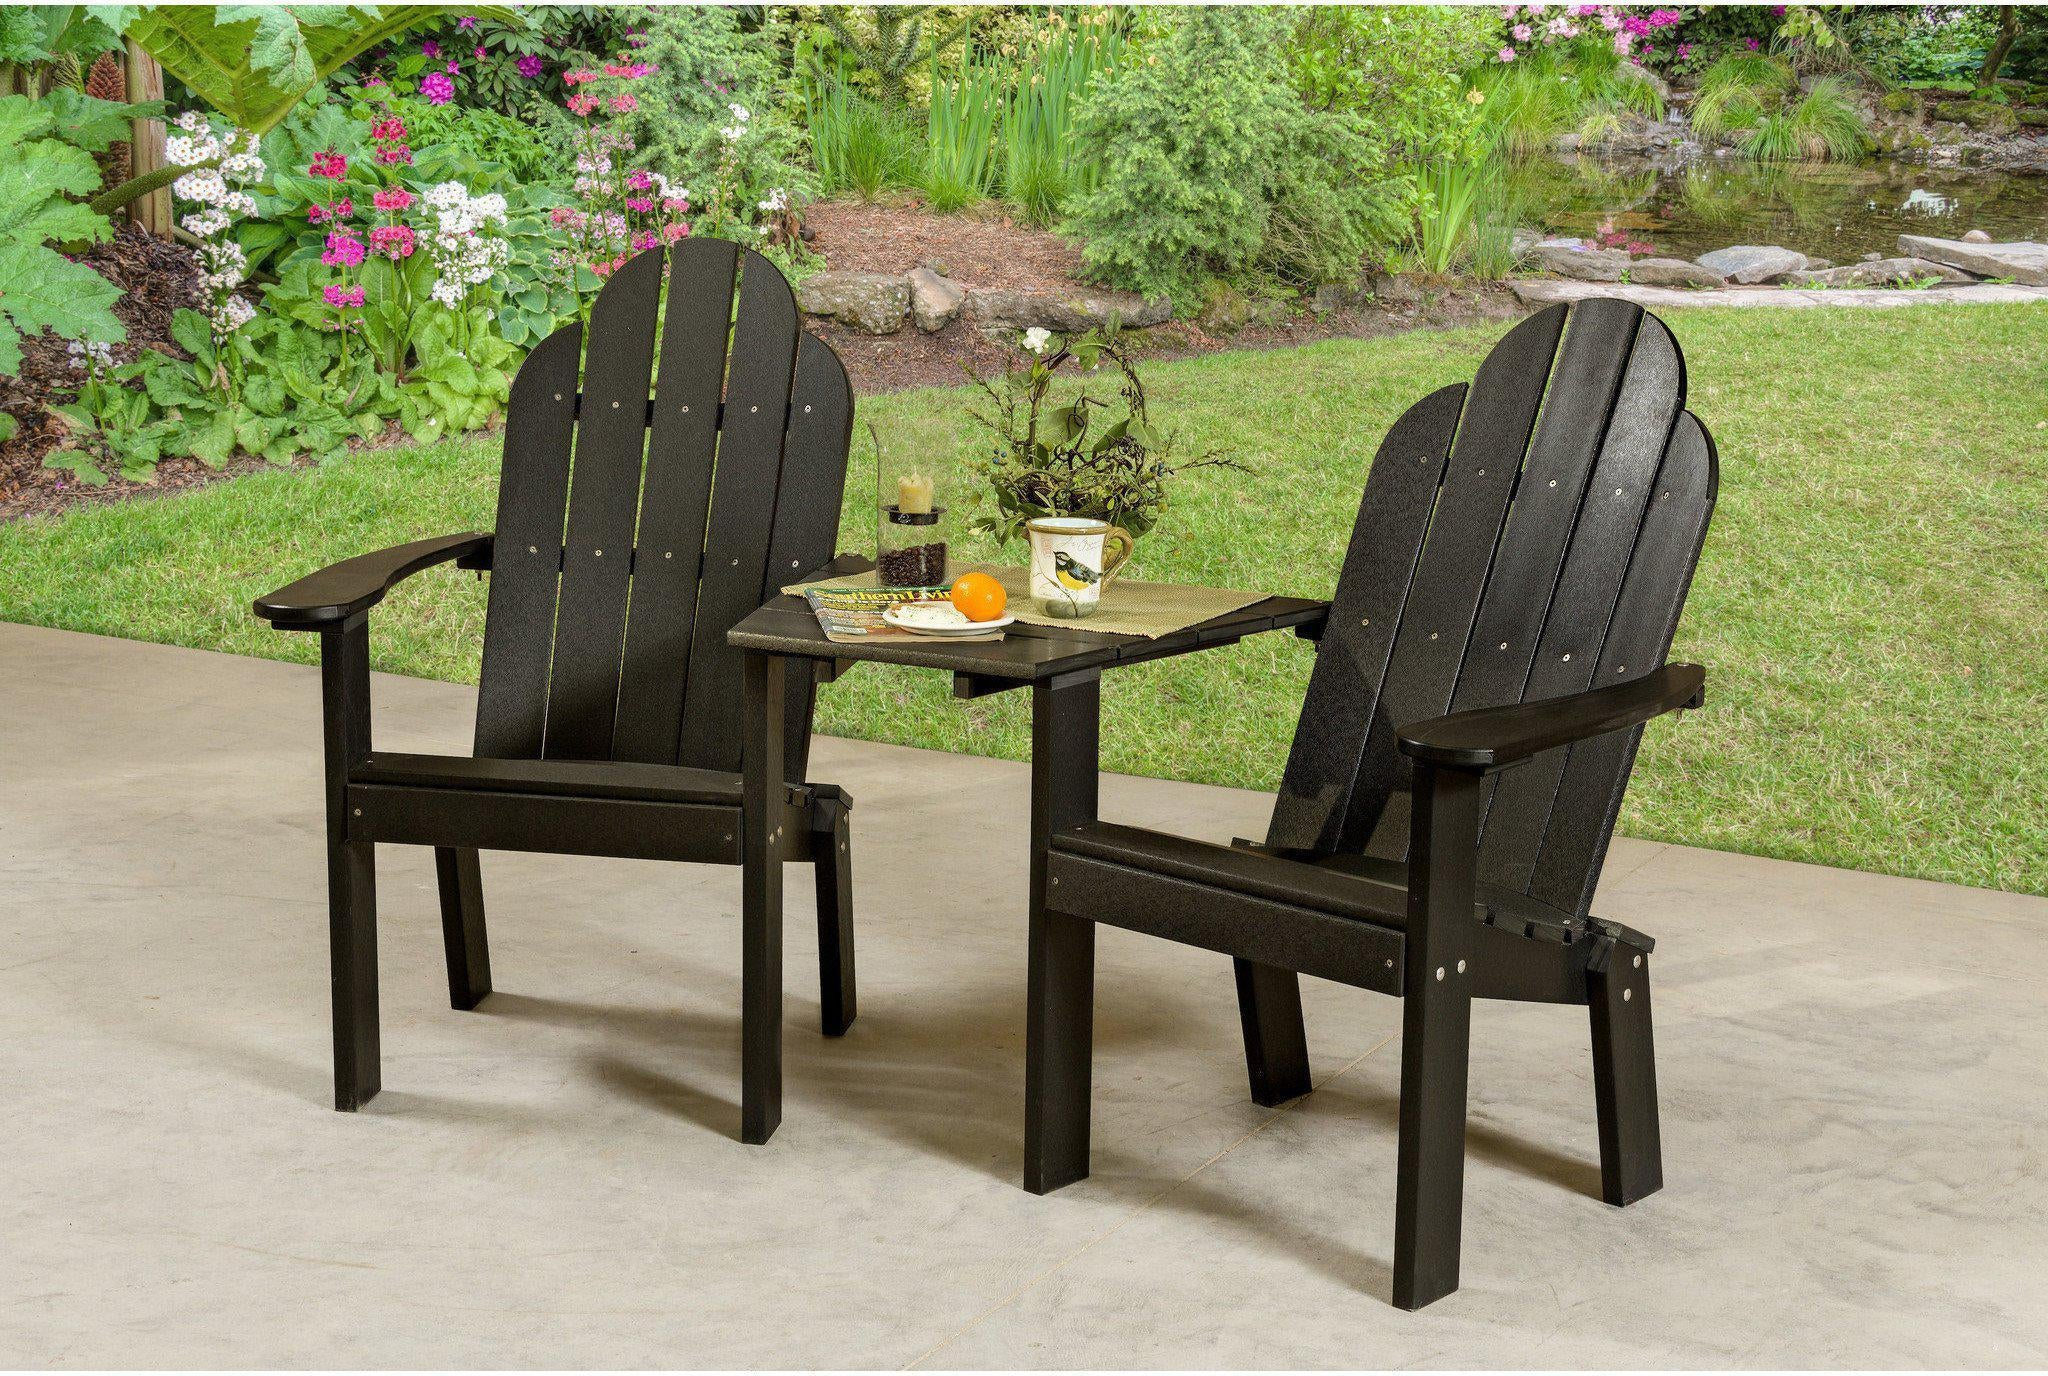 Wildridge Recycled Plastic Classic Deck Chair Tete A Tete   Black Wood